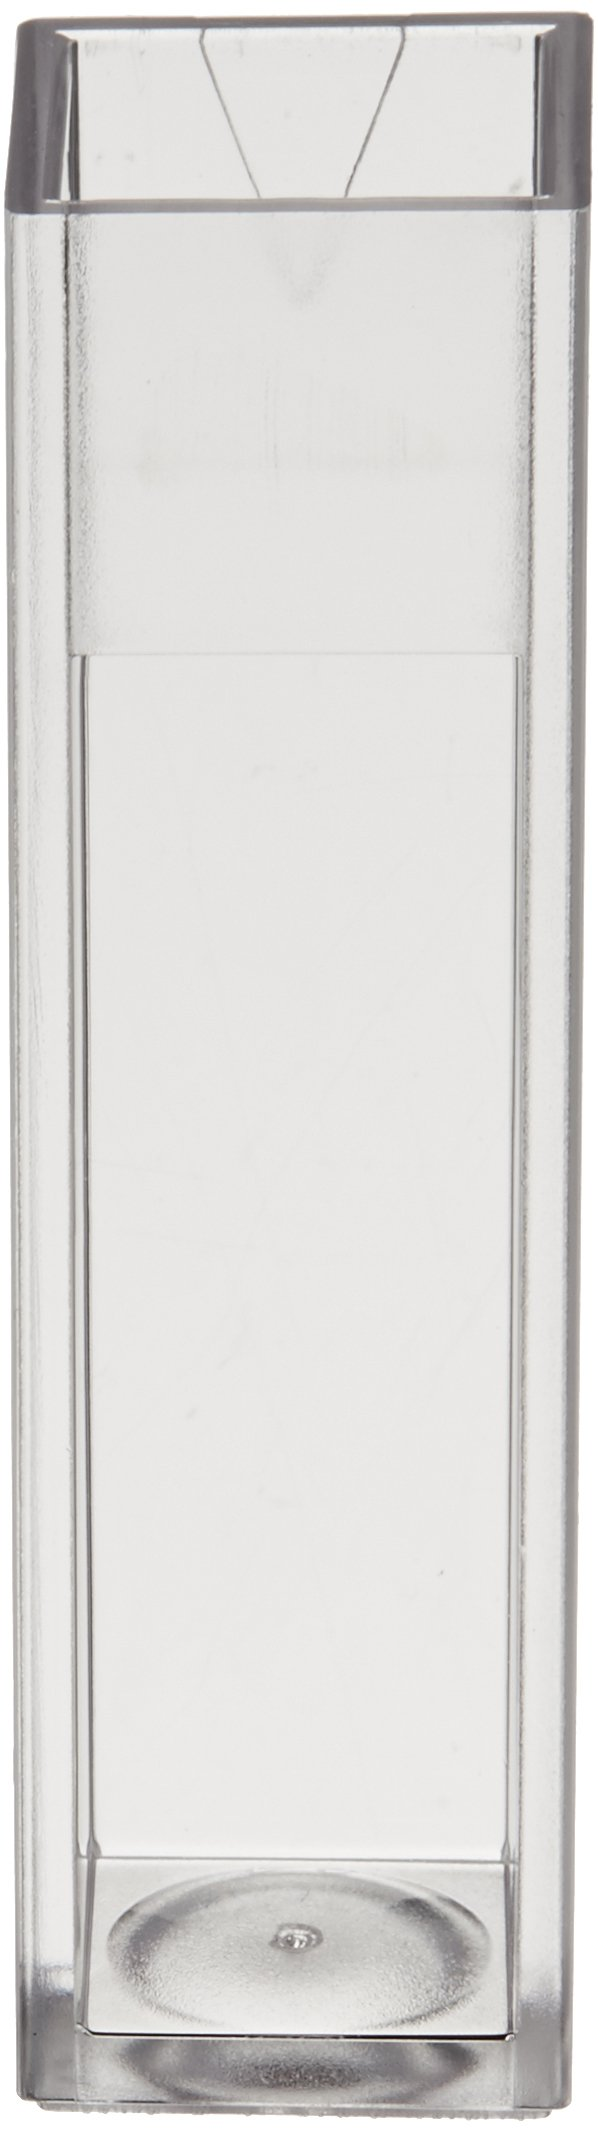 Jenway 060-084 Plastic Disposable Cuvette for Spectrophotometry, Visible Wavelength, 10mm Path Length, 2.4 to 4.5ml Fill Volume (Pack of 100)